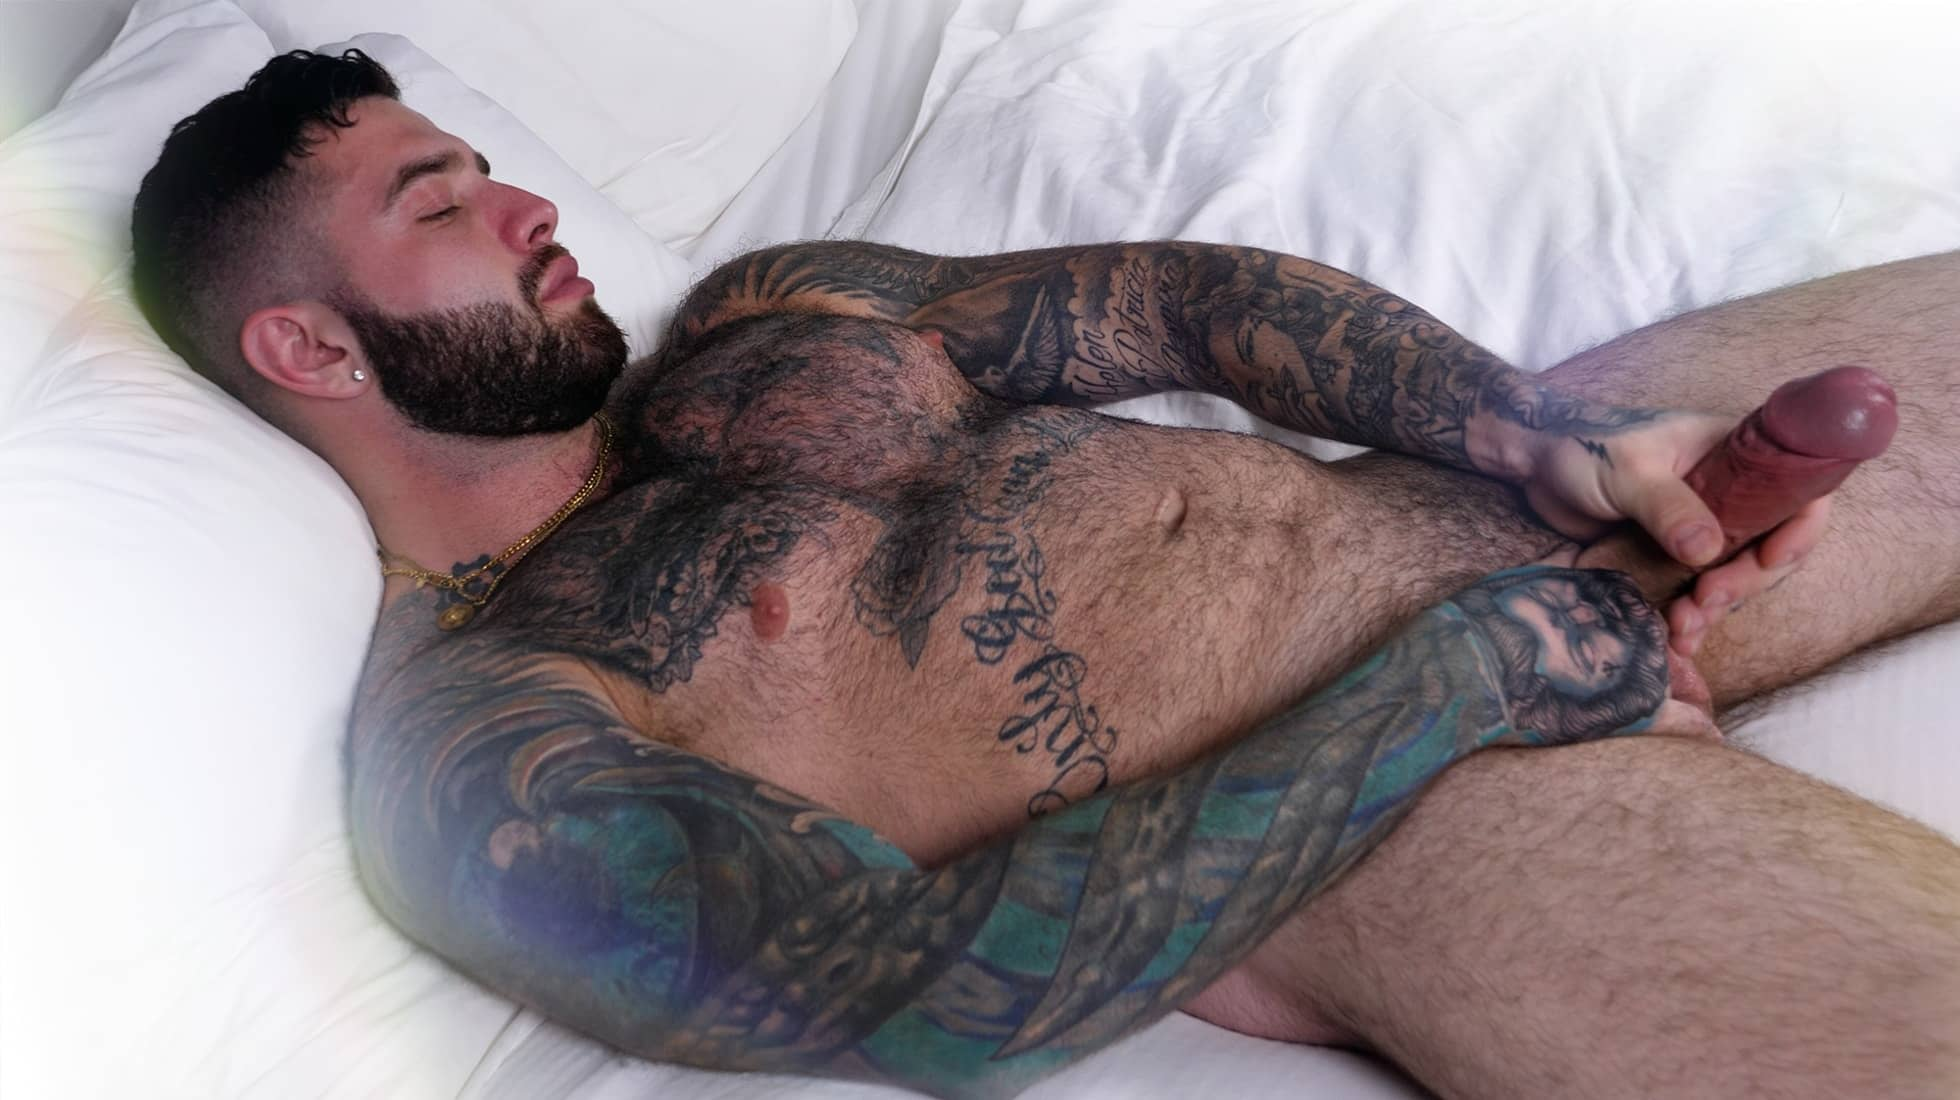 Hairy Man with a Big Uncut Dick, Giovanni 2